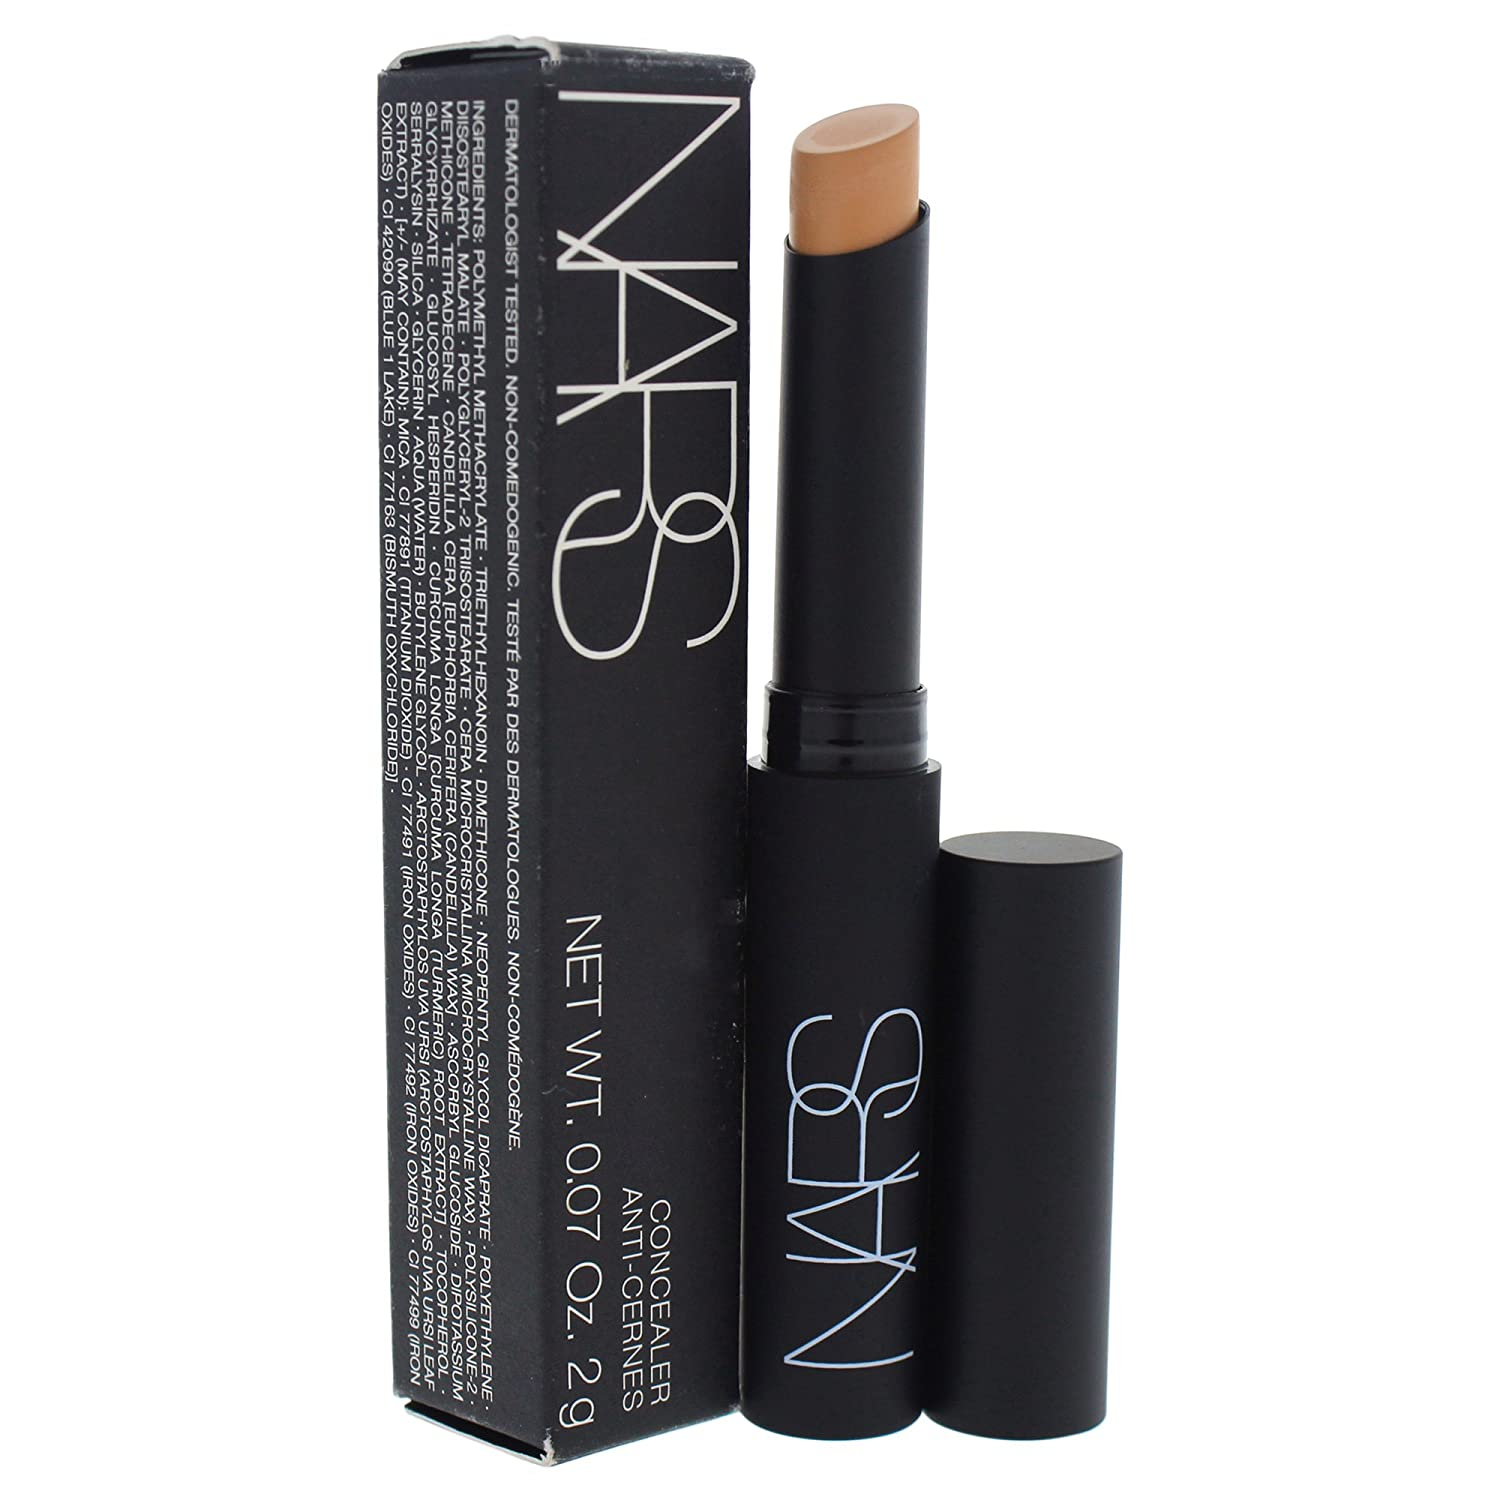 Image result for nars concealer stick